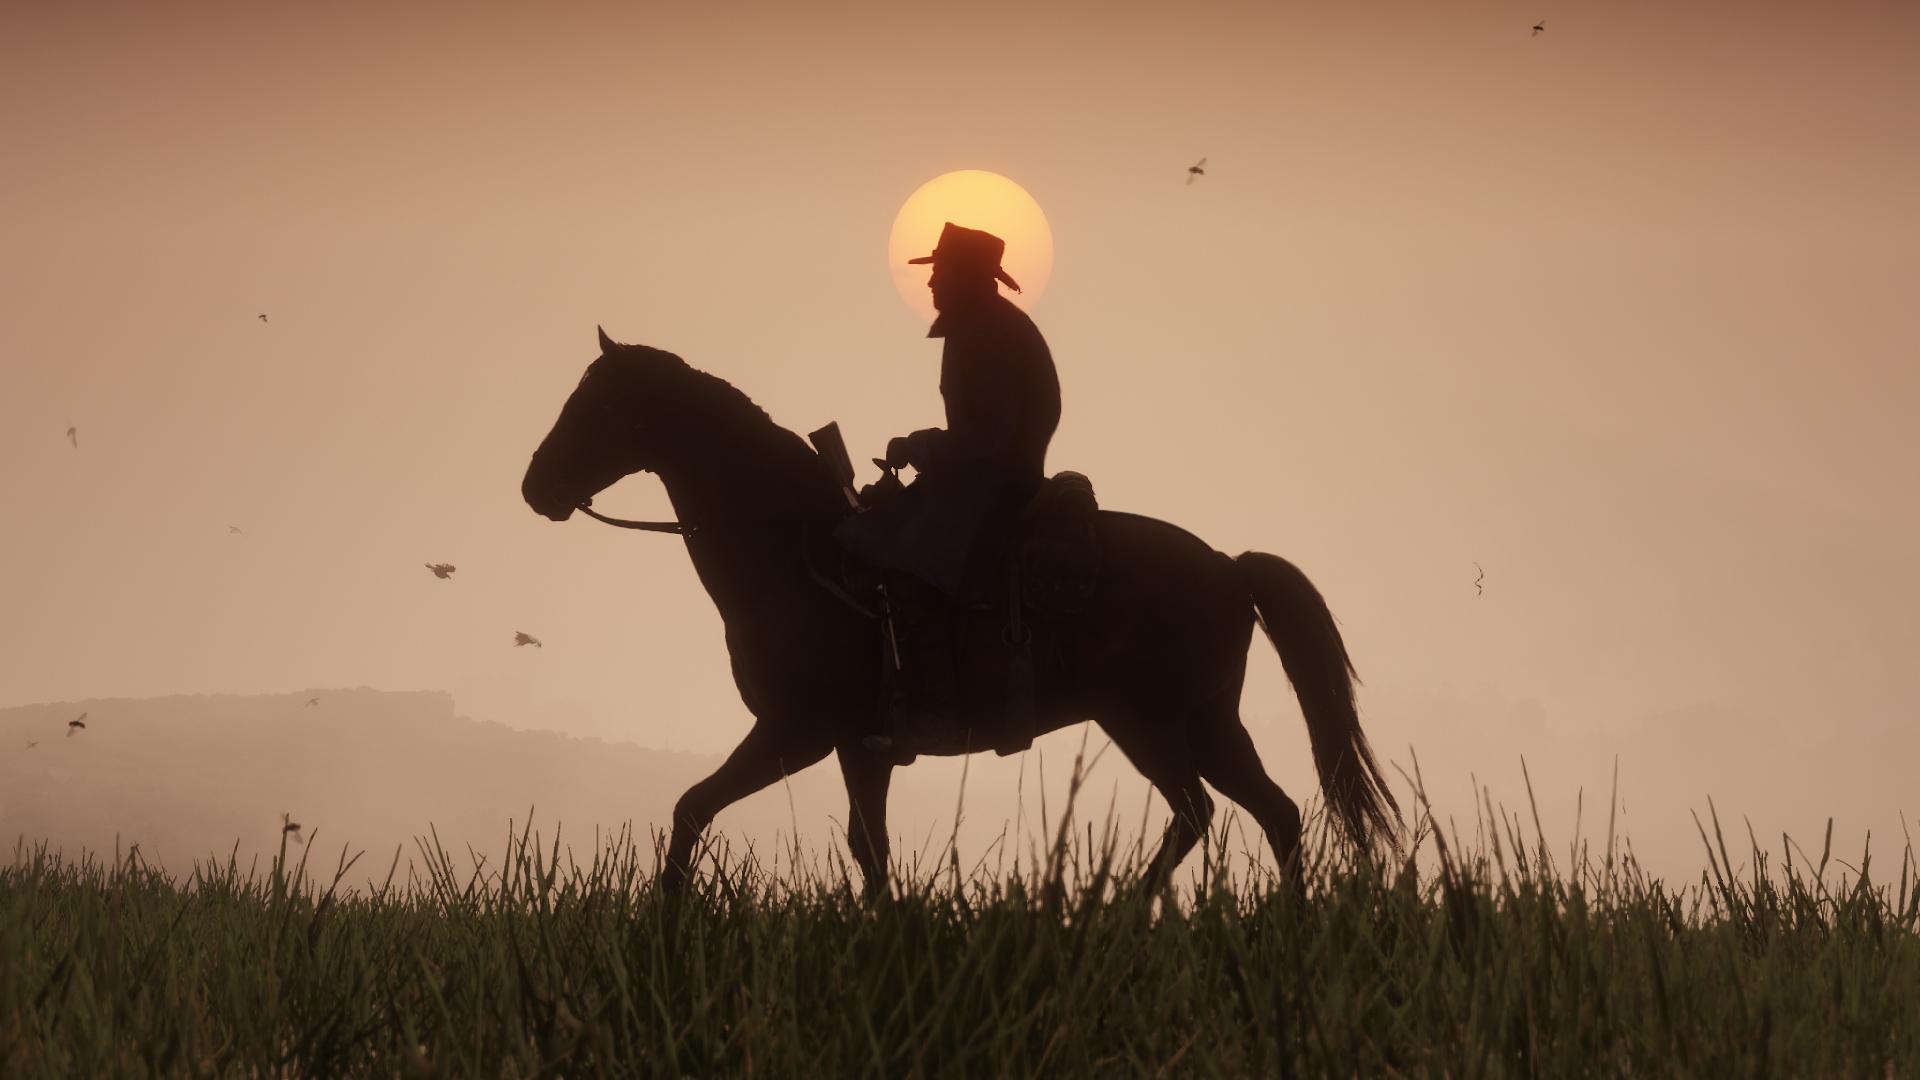 New Red Dead Redemption 2 Trailer Drops Wednesday And Art Book